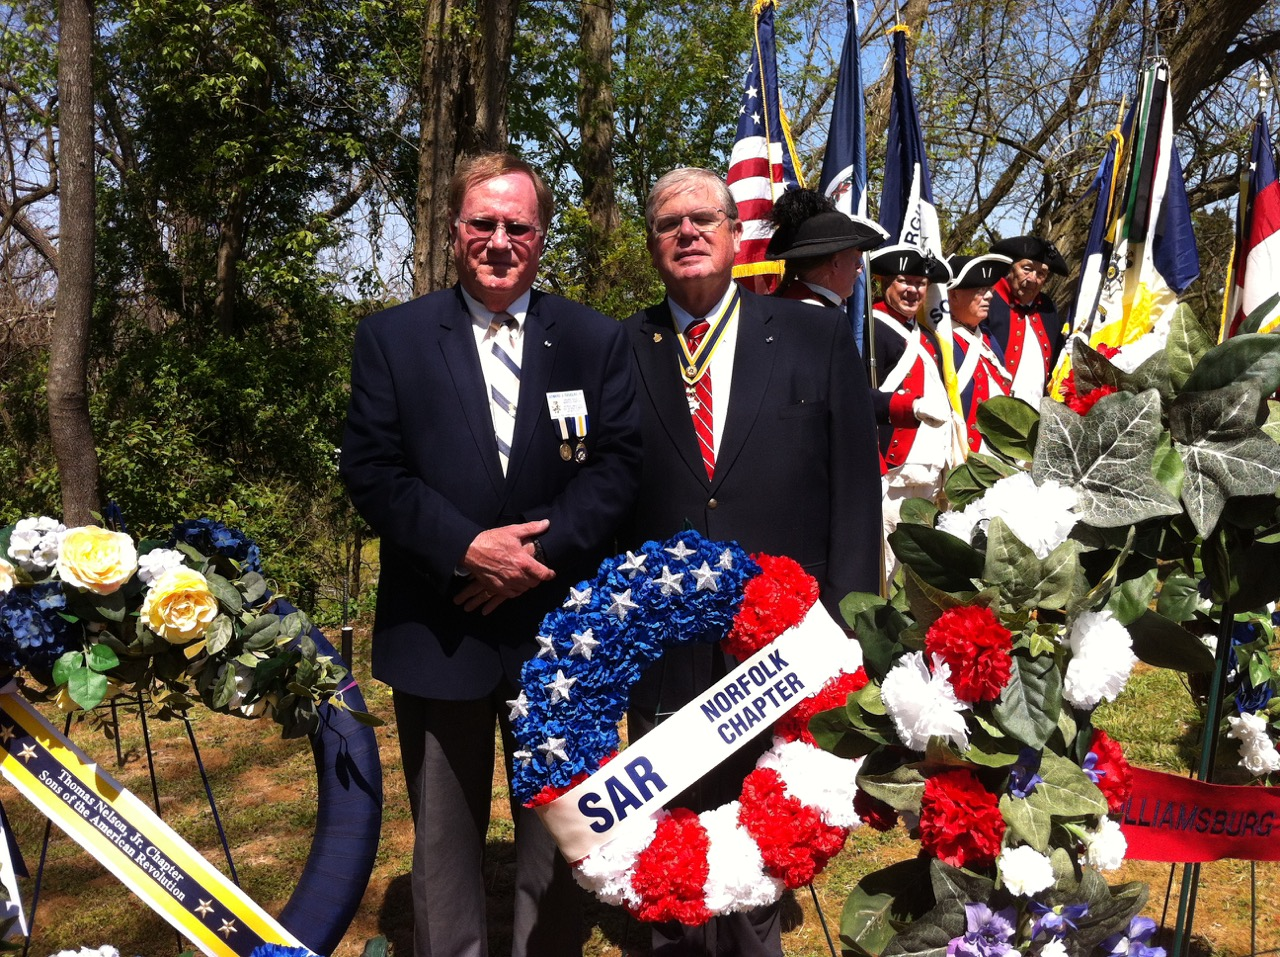 Past President Tom Whetstone and Secretary Edward Douglas with the Norfolk SAR Chapter wreath